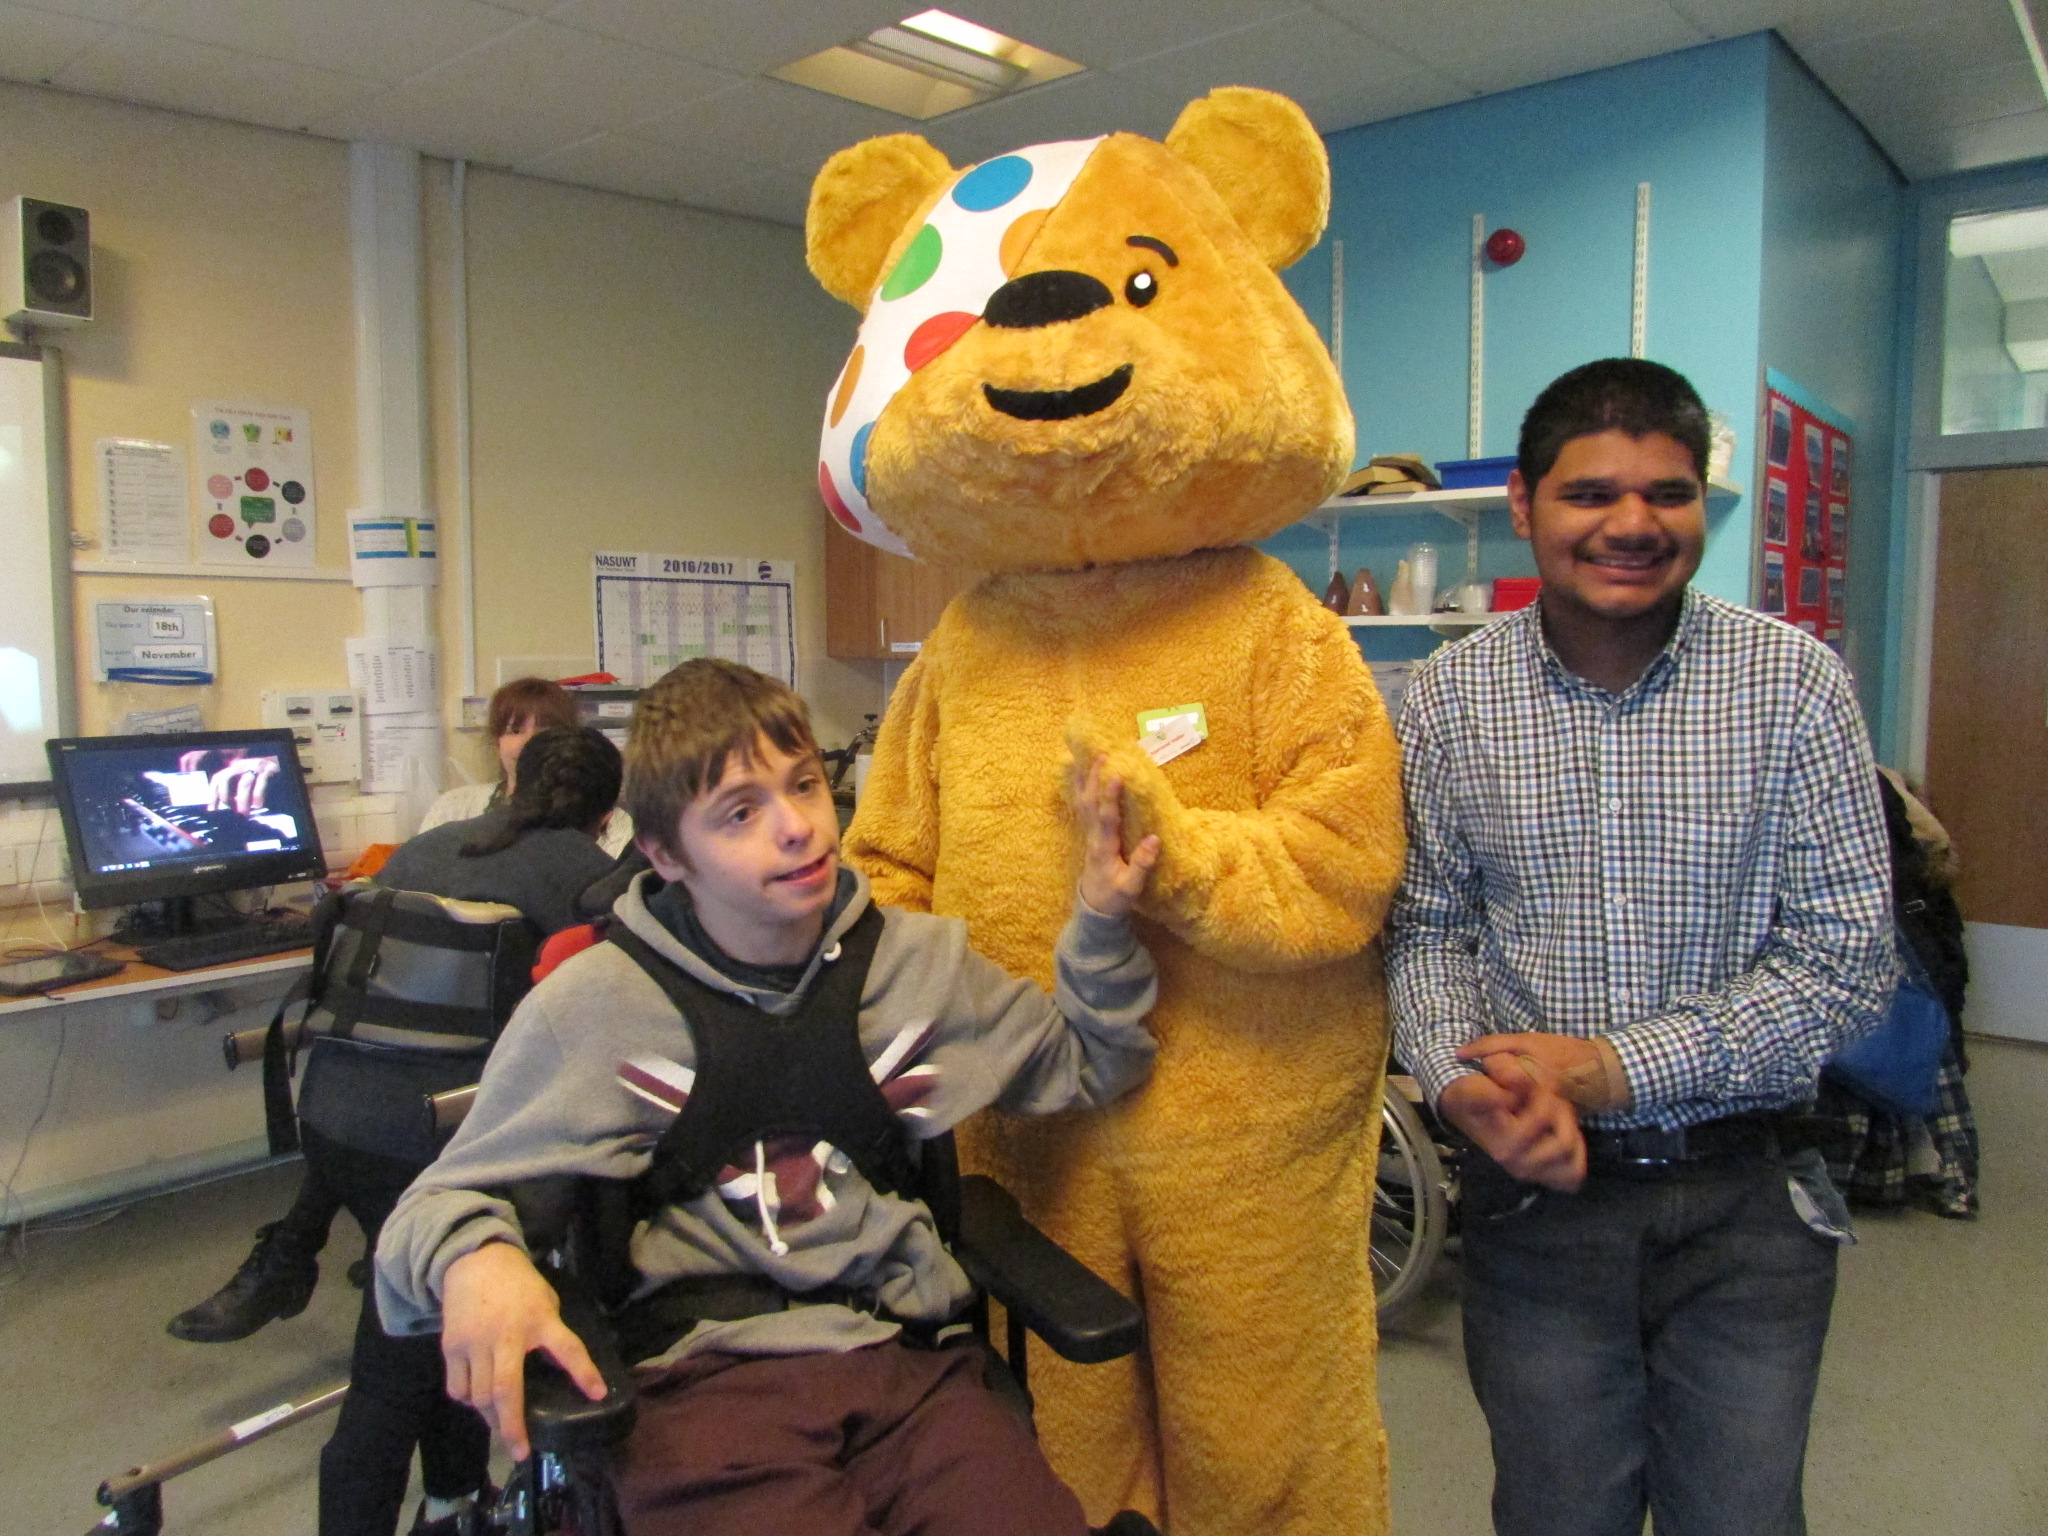 Children in Need part II